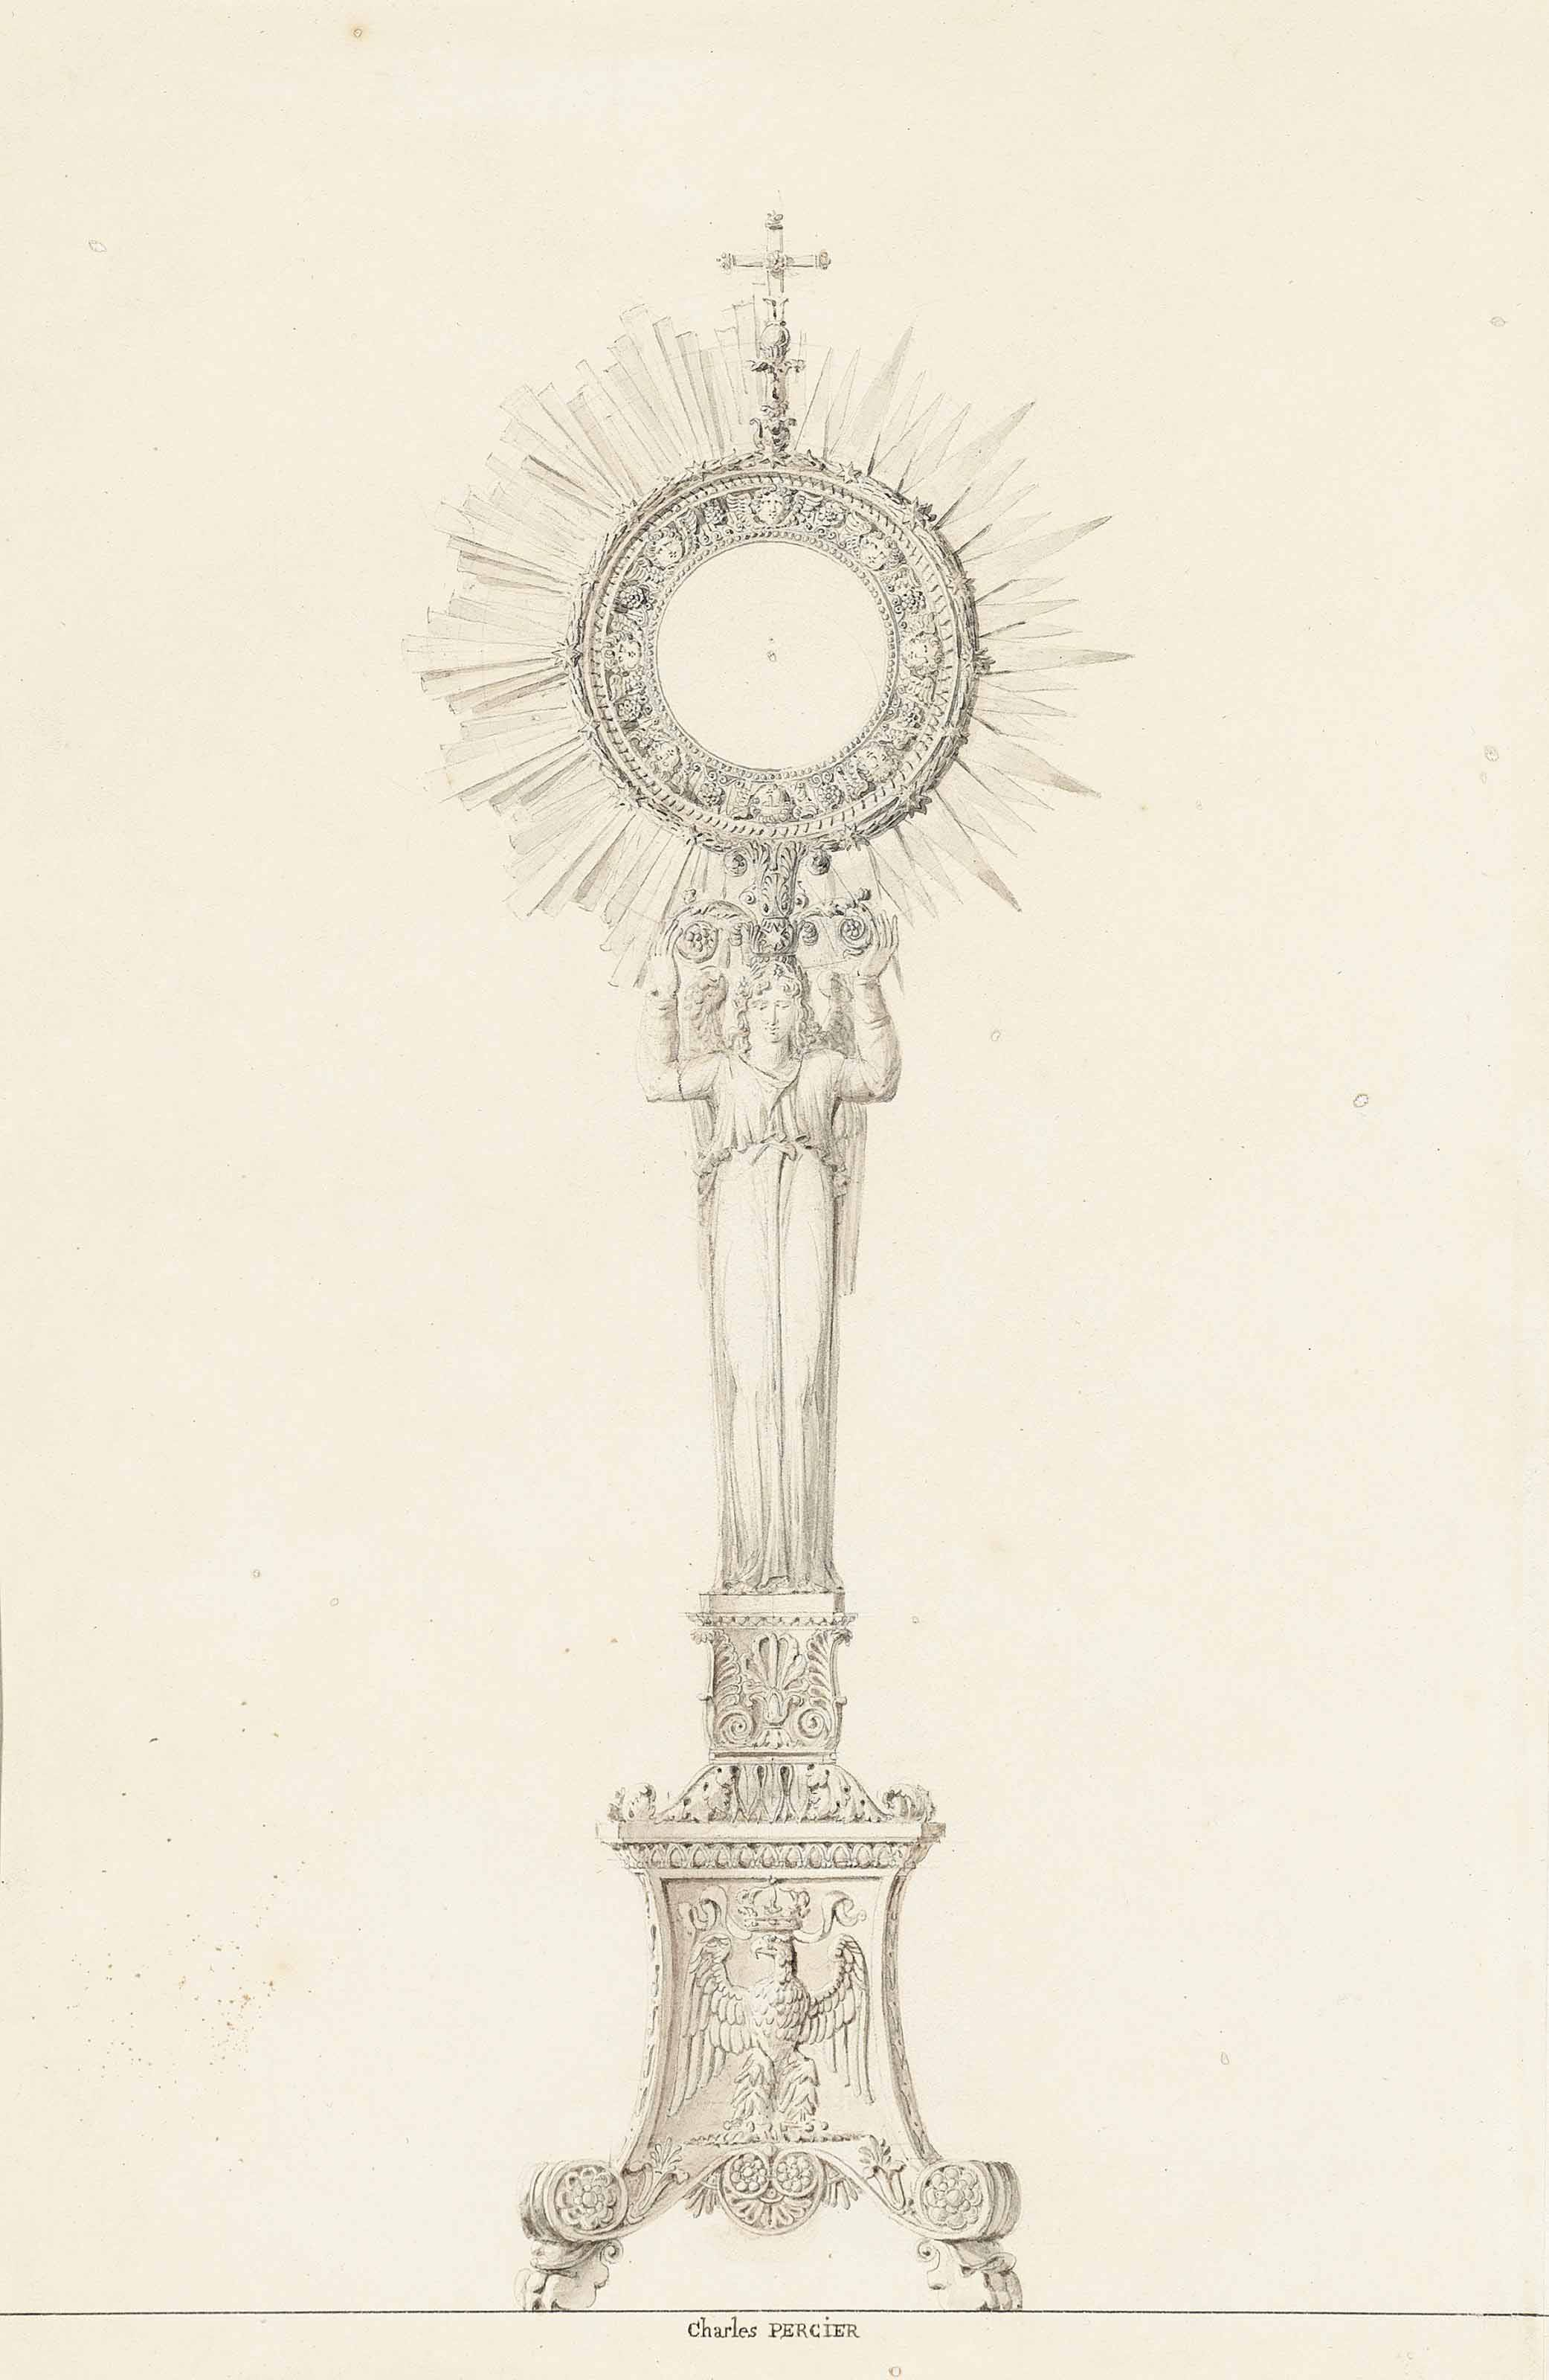 An ostensory designed for the coronation of Napoleon